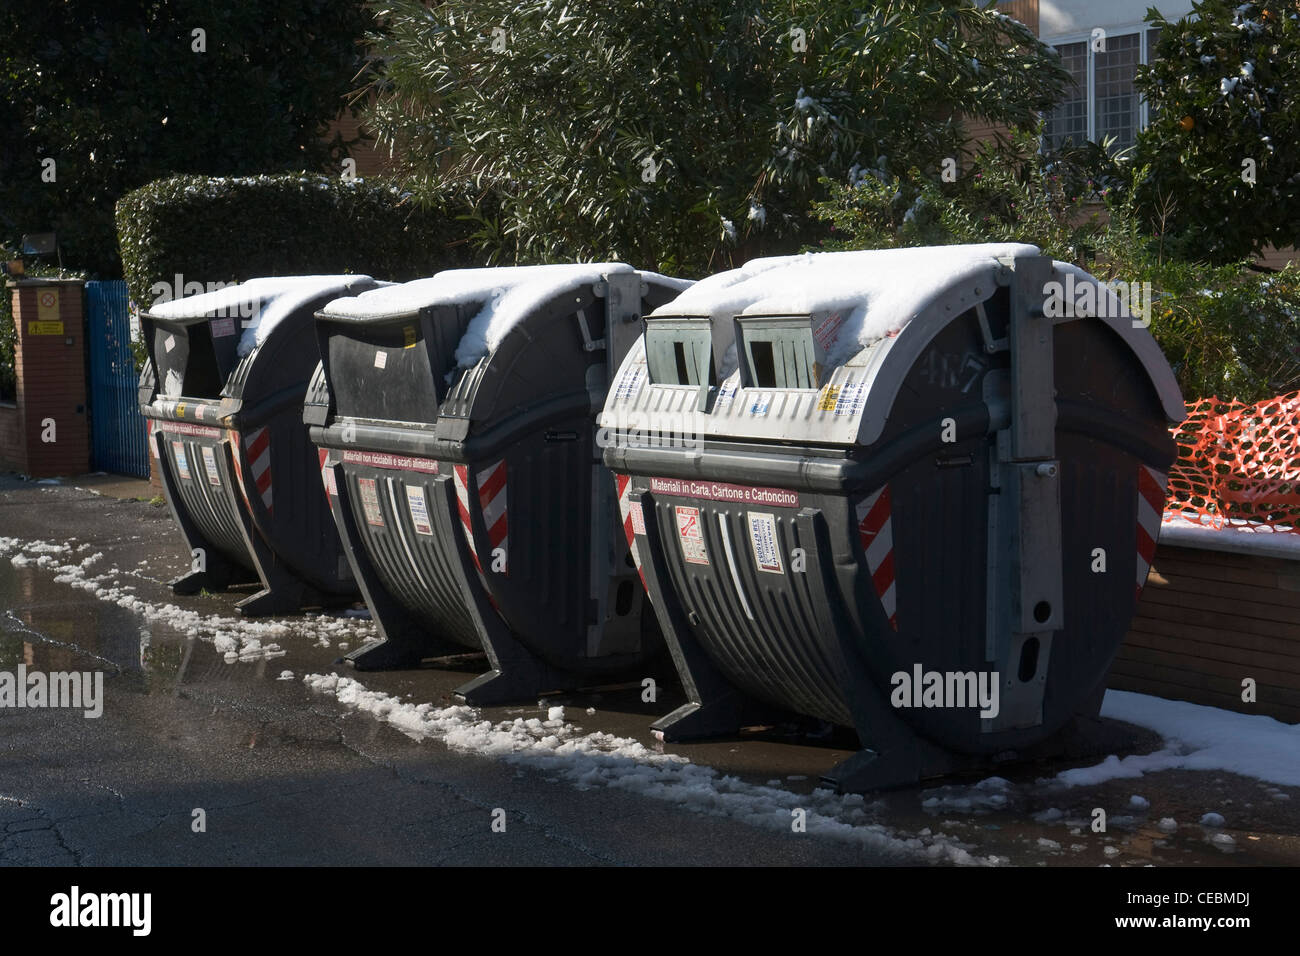 Rubbish bins showing the rare snowfall occurred in Rome on February 4th, 2012 - Stock Image